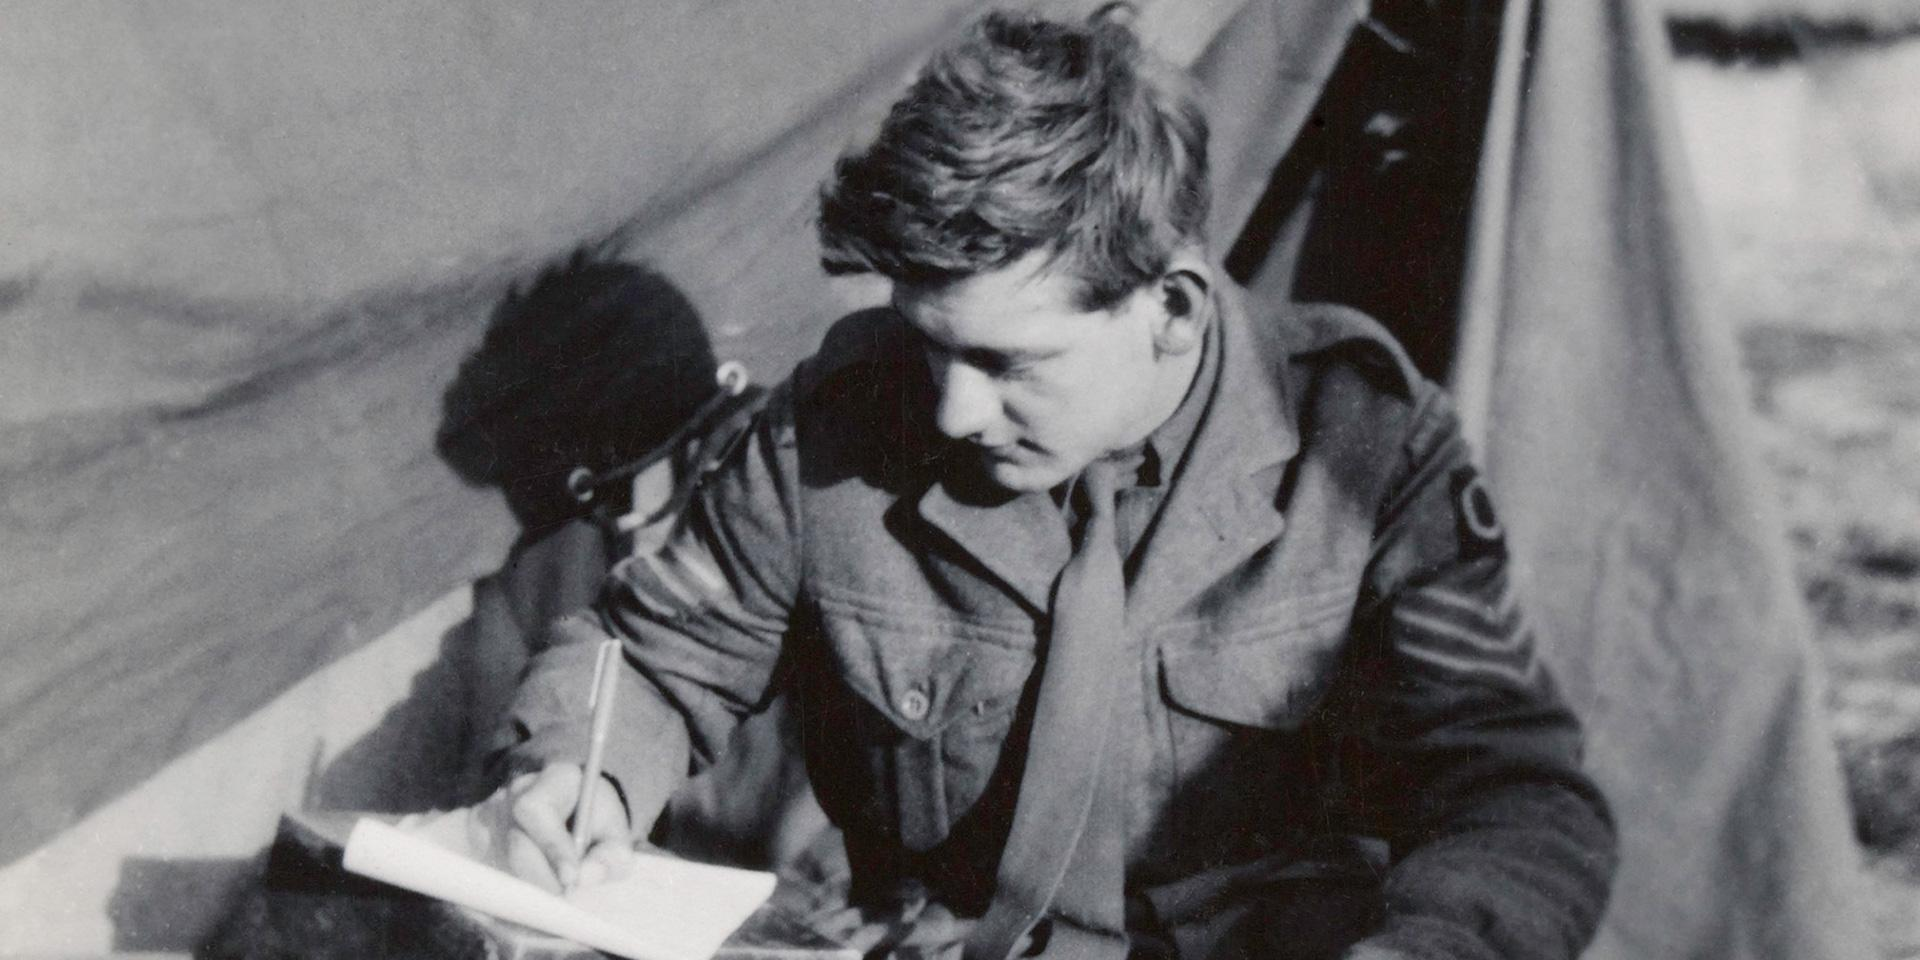 Sergeant Anthony Baker writing a letter during his service in Korea